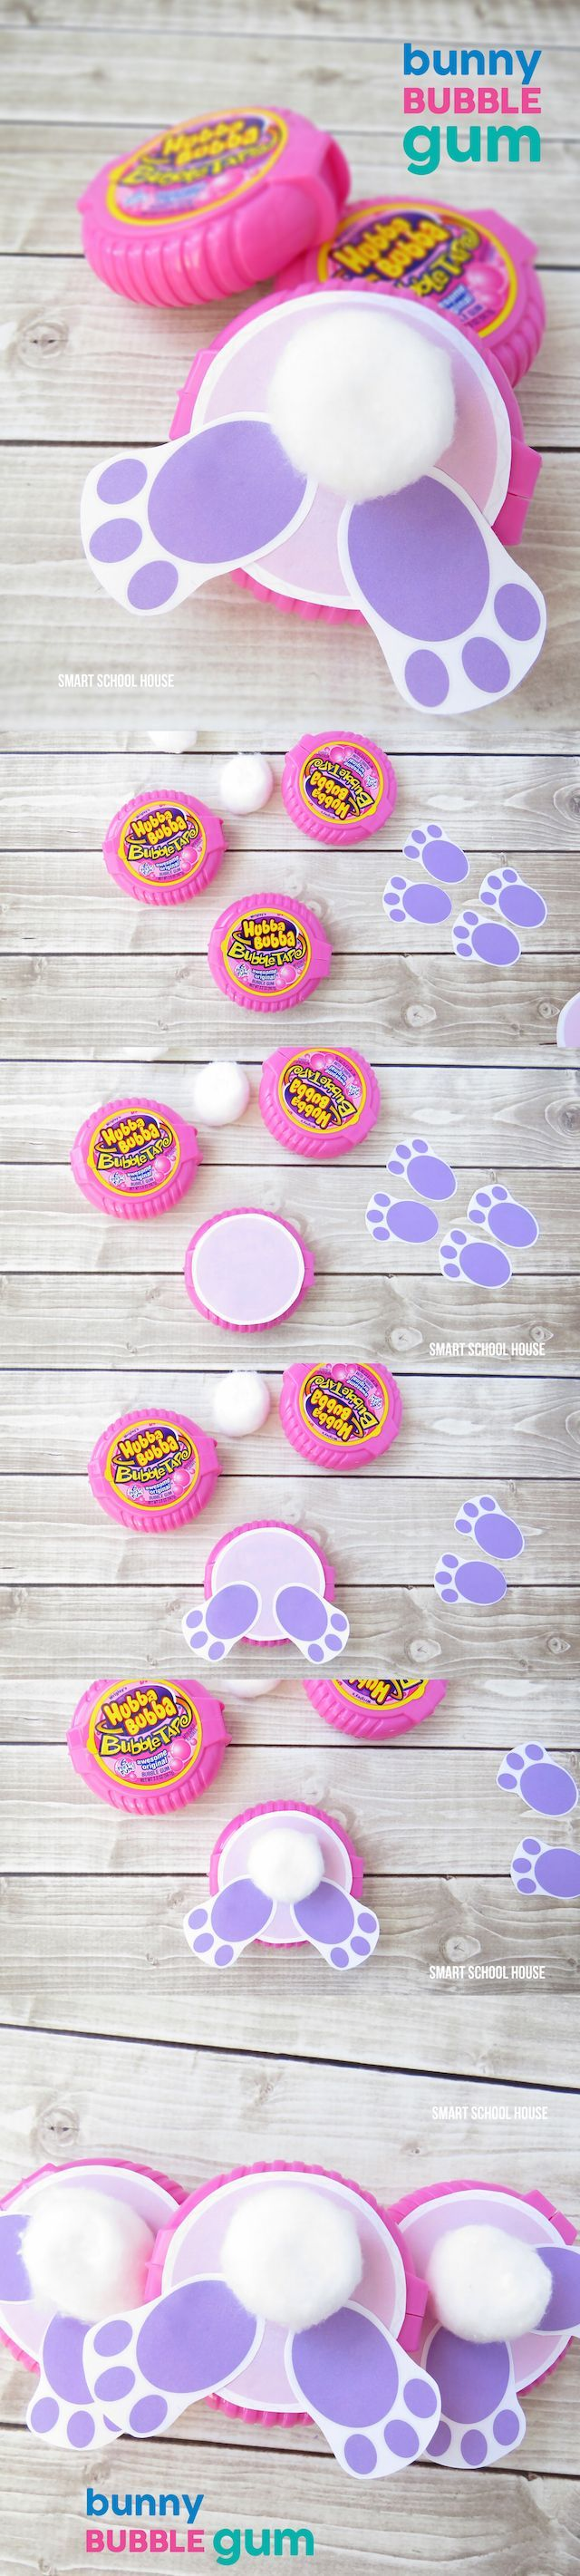 How to make bunny bubble gum using bubble tape gum a cute diy how to make bunny bubble gum using bubble tape gum a cute diy easter gift negle Images